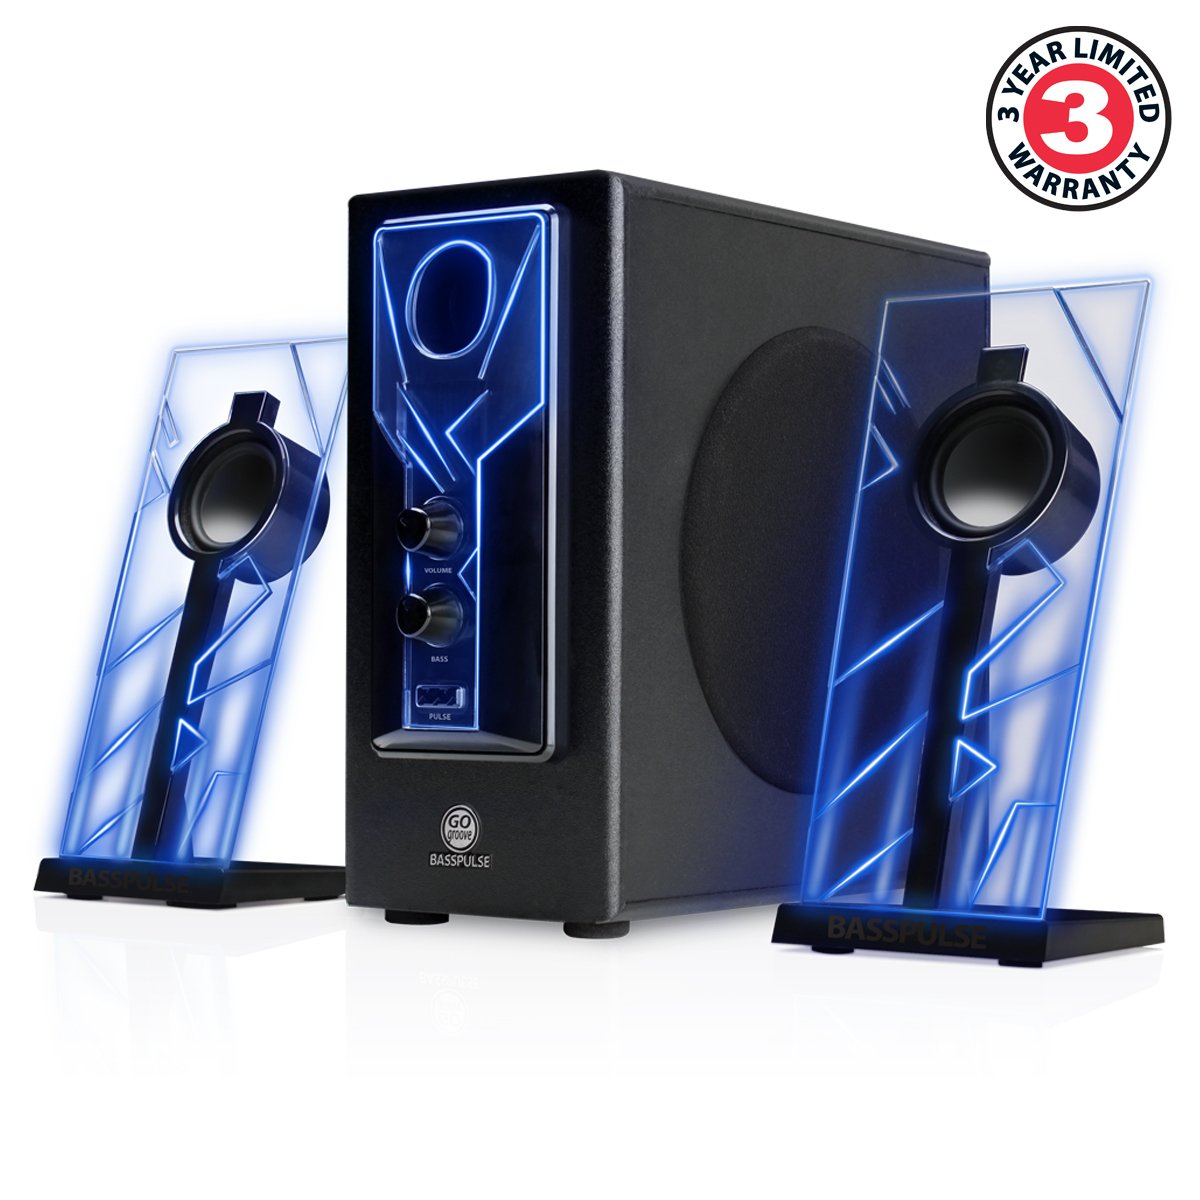 GOgroove BassPULSE 2.1 Computer Speakers with Blue LED Glow Lights and Powered Subwoofer - Gaming Speaker System for Music on Desktop, Laptop, PC with 40 Watts, Heavy Bass by GOgroove (Image #3)